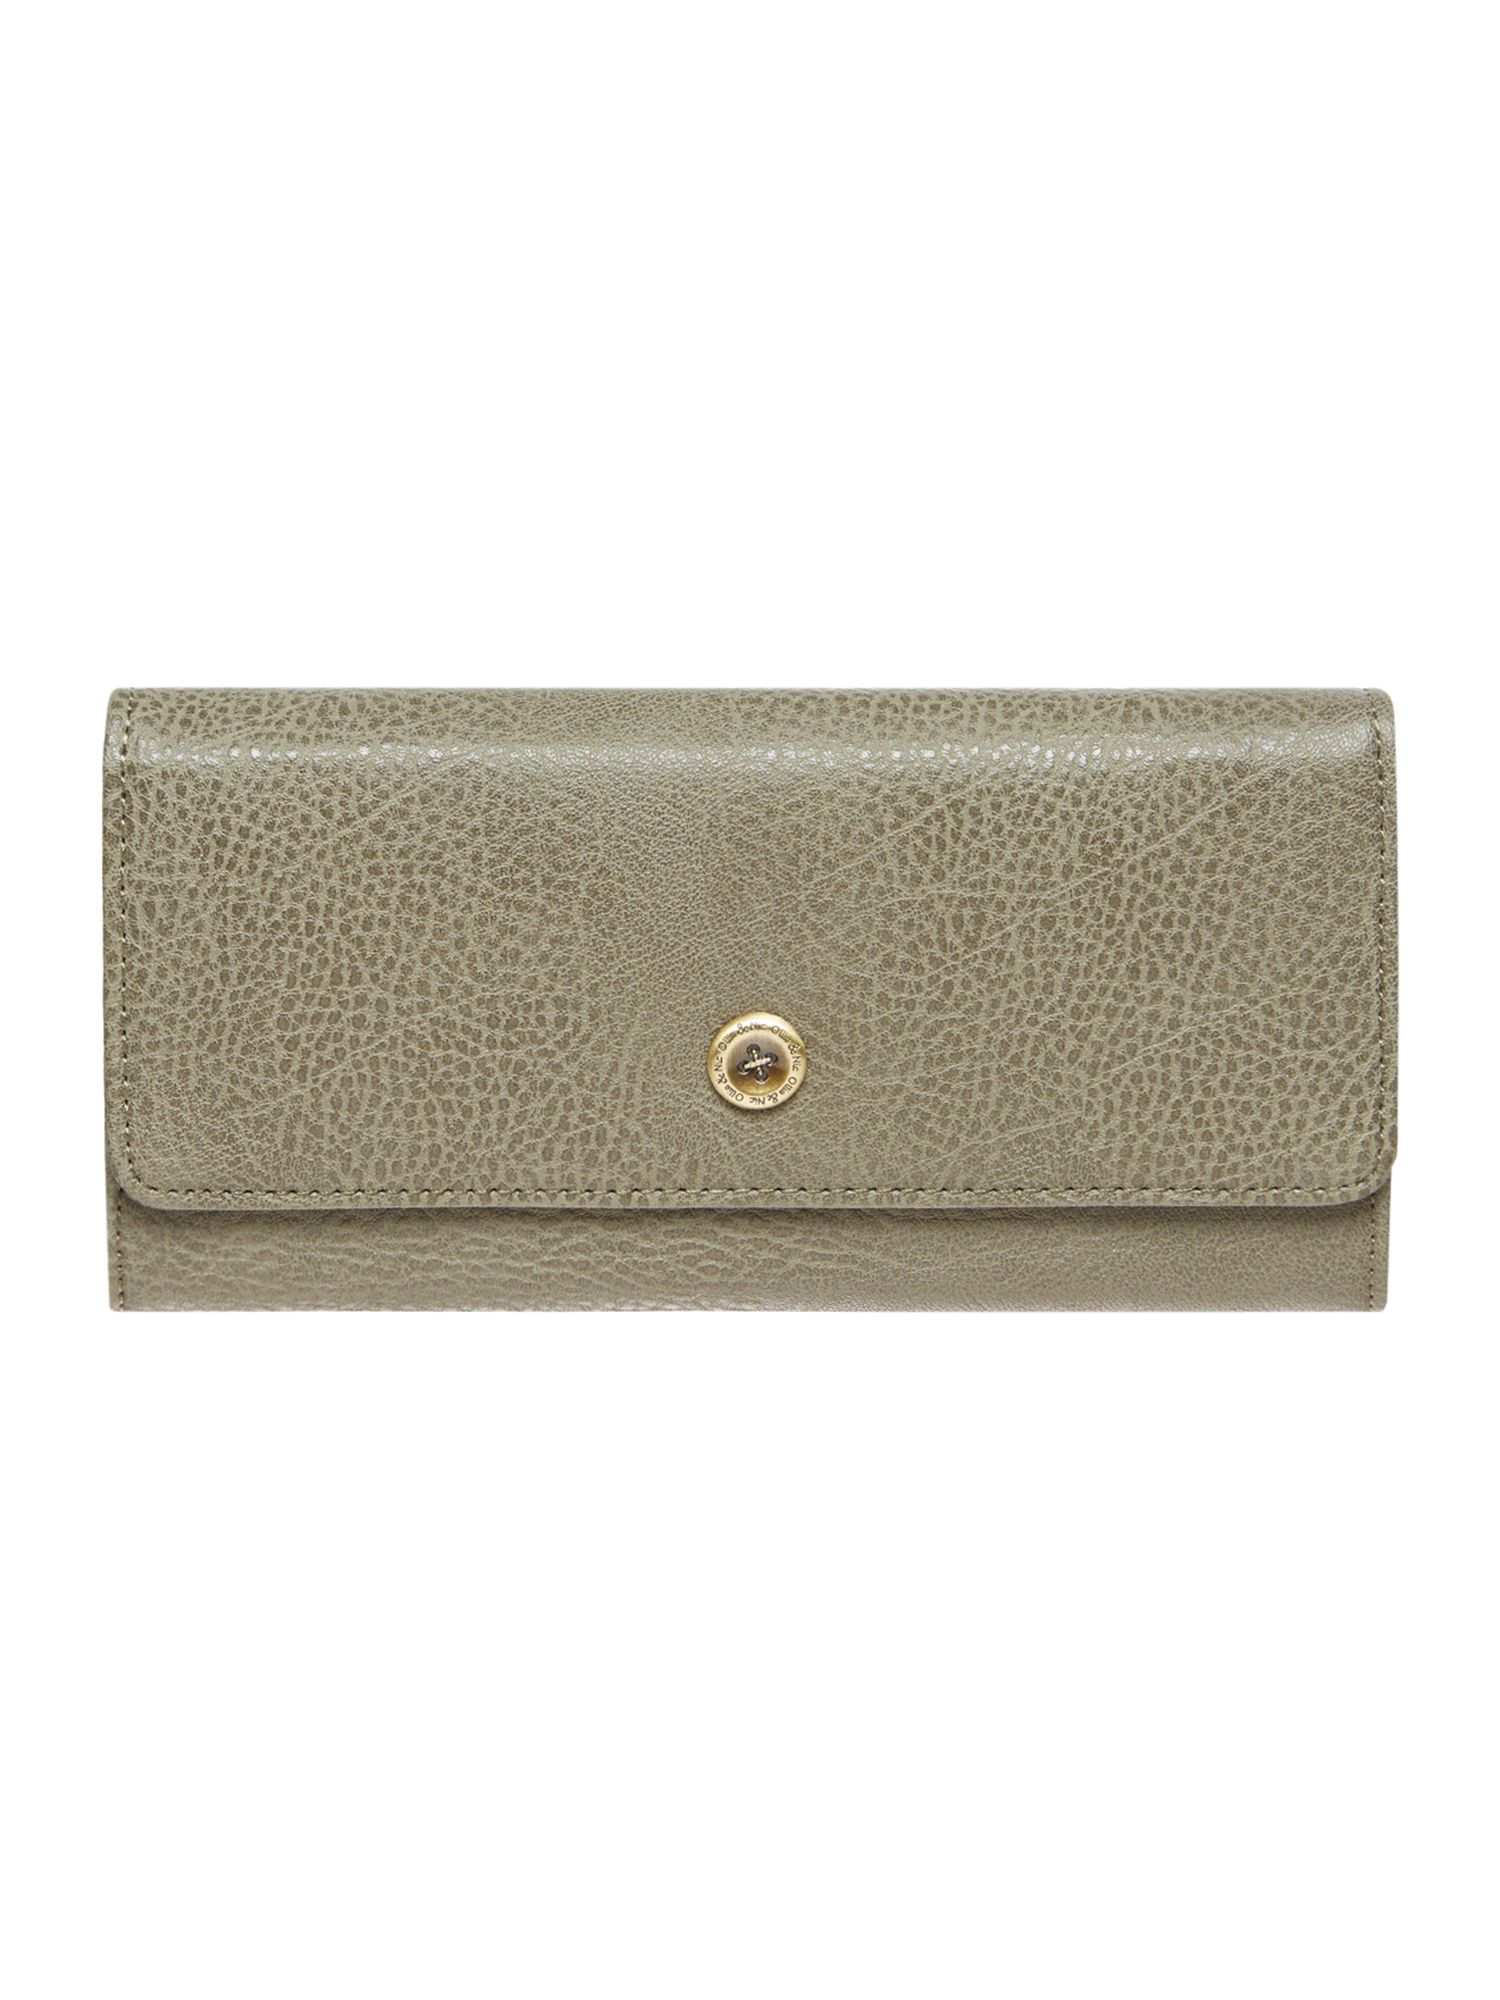 Ollie & Nic Nora flapover purse, Olive